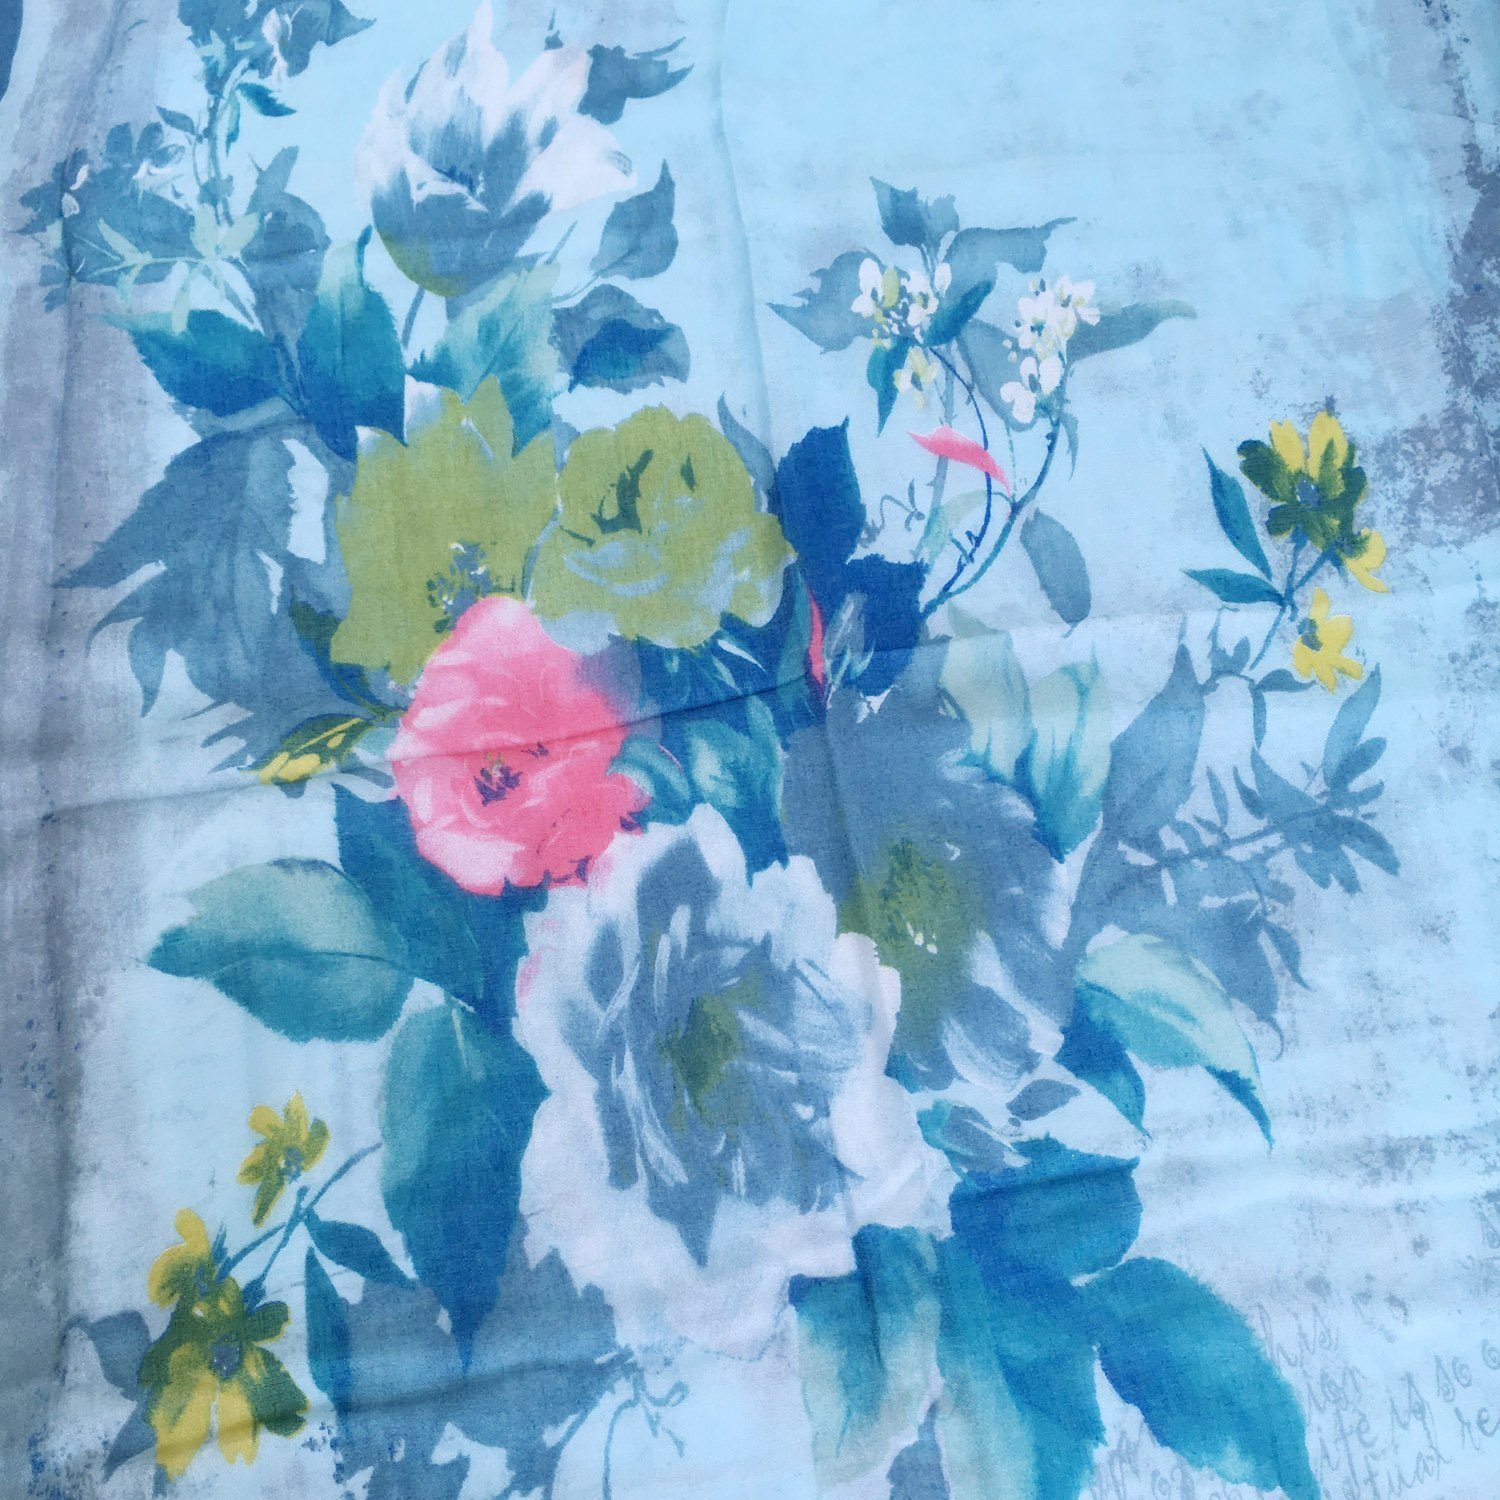 GERINLY Summer Scarfs Rosa Chinensis Print Beach Wrap Womens Travel Shawls (AzureBlue) by GERINLY (Image #4)